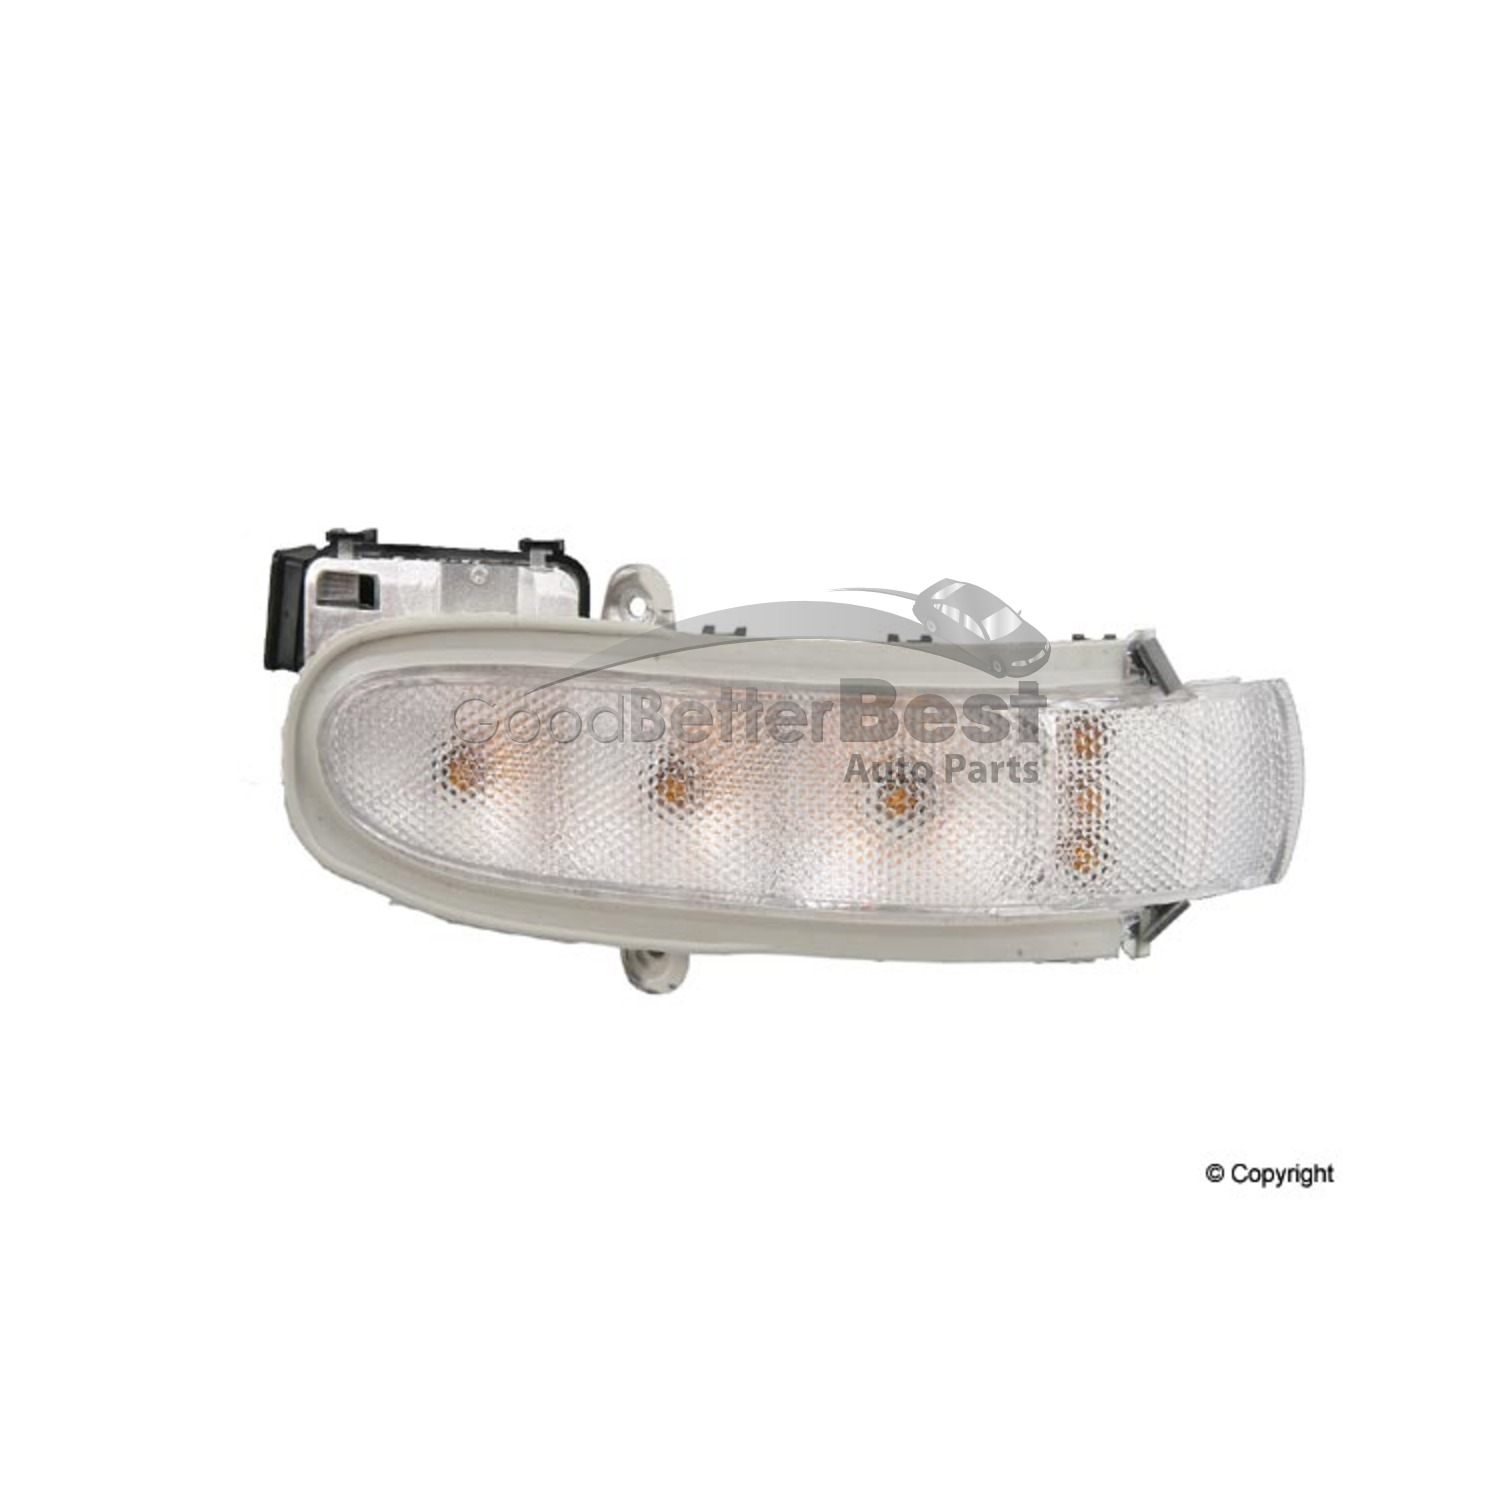 New Fer Turn Signal Light Assembly Front Right 024002906 Audi Q7